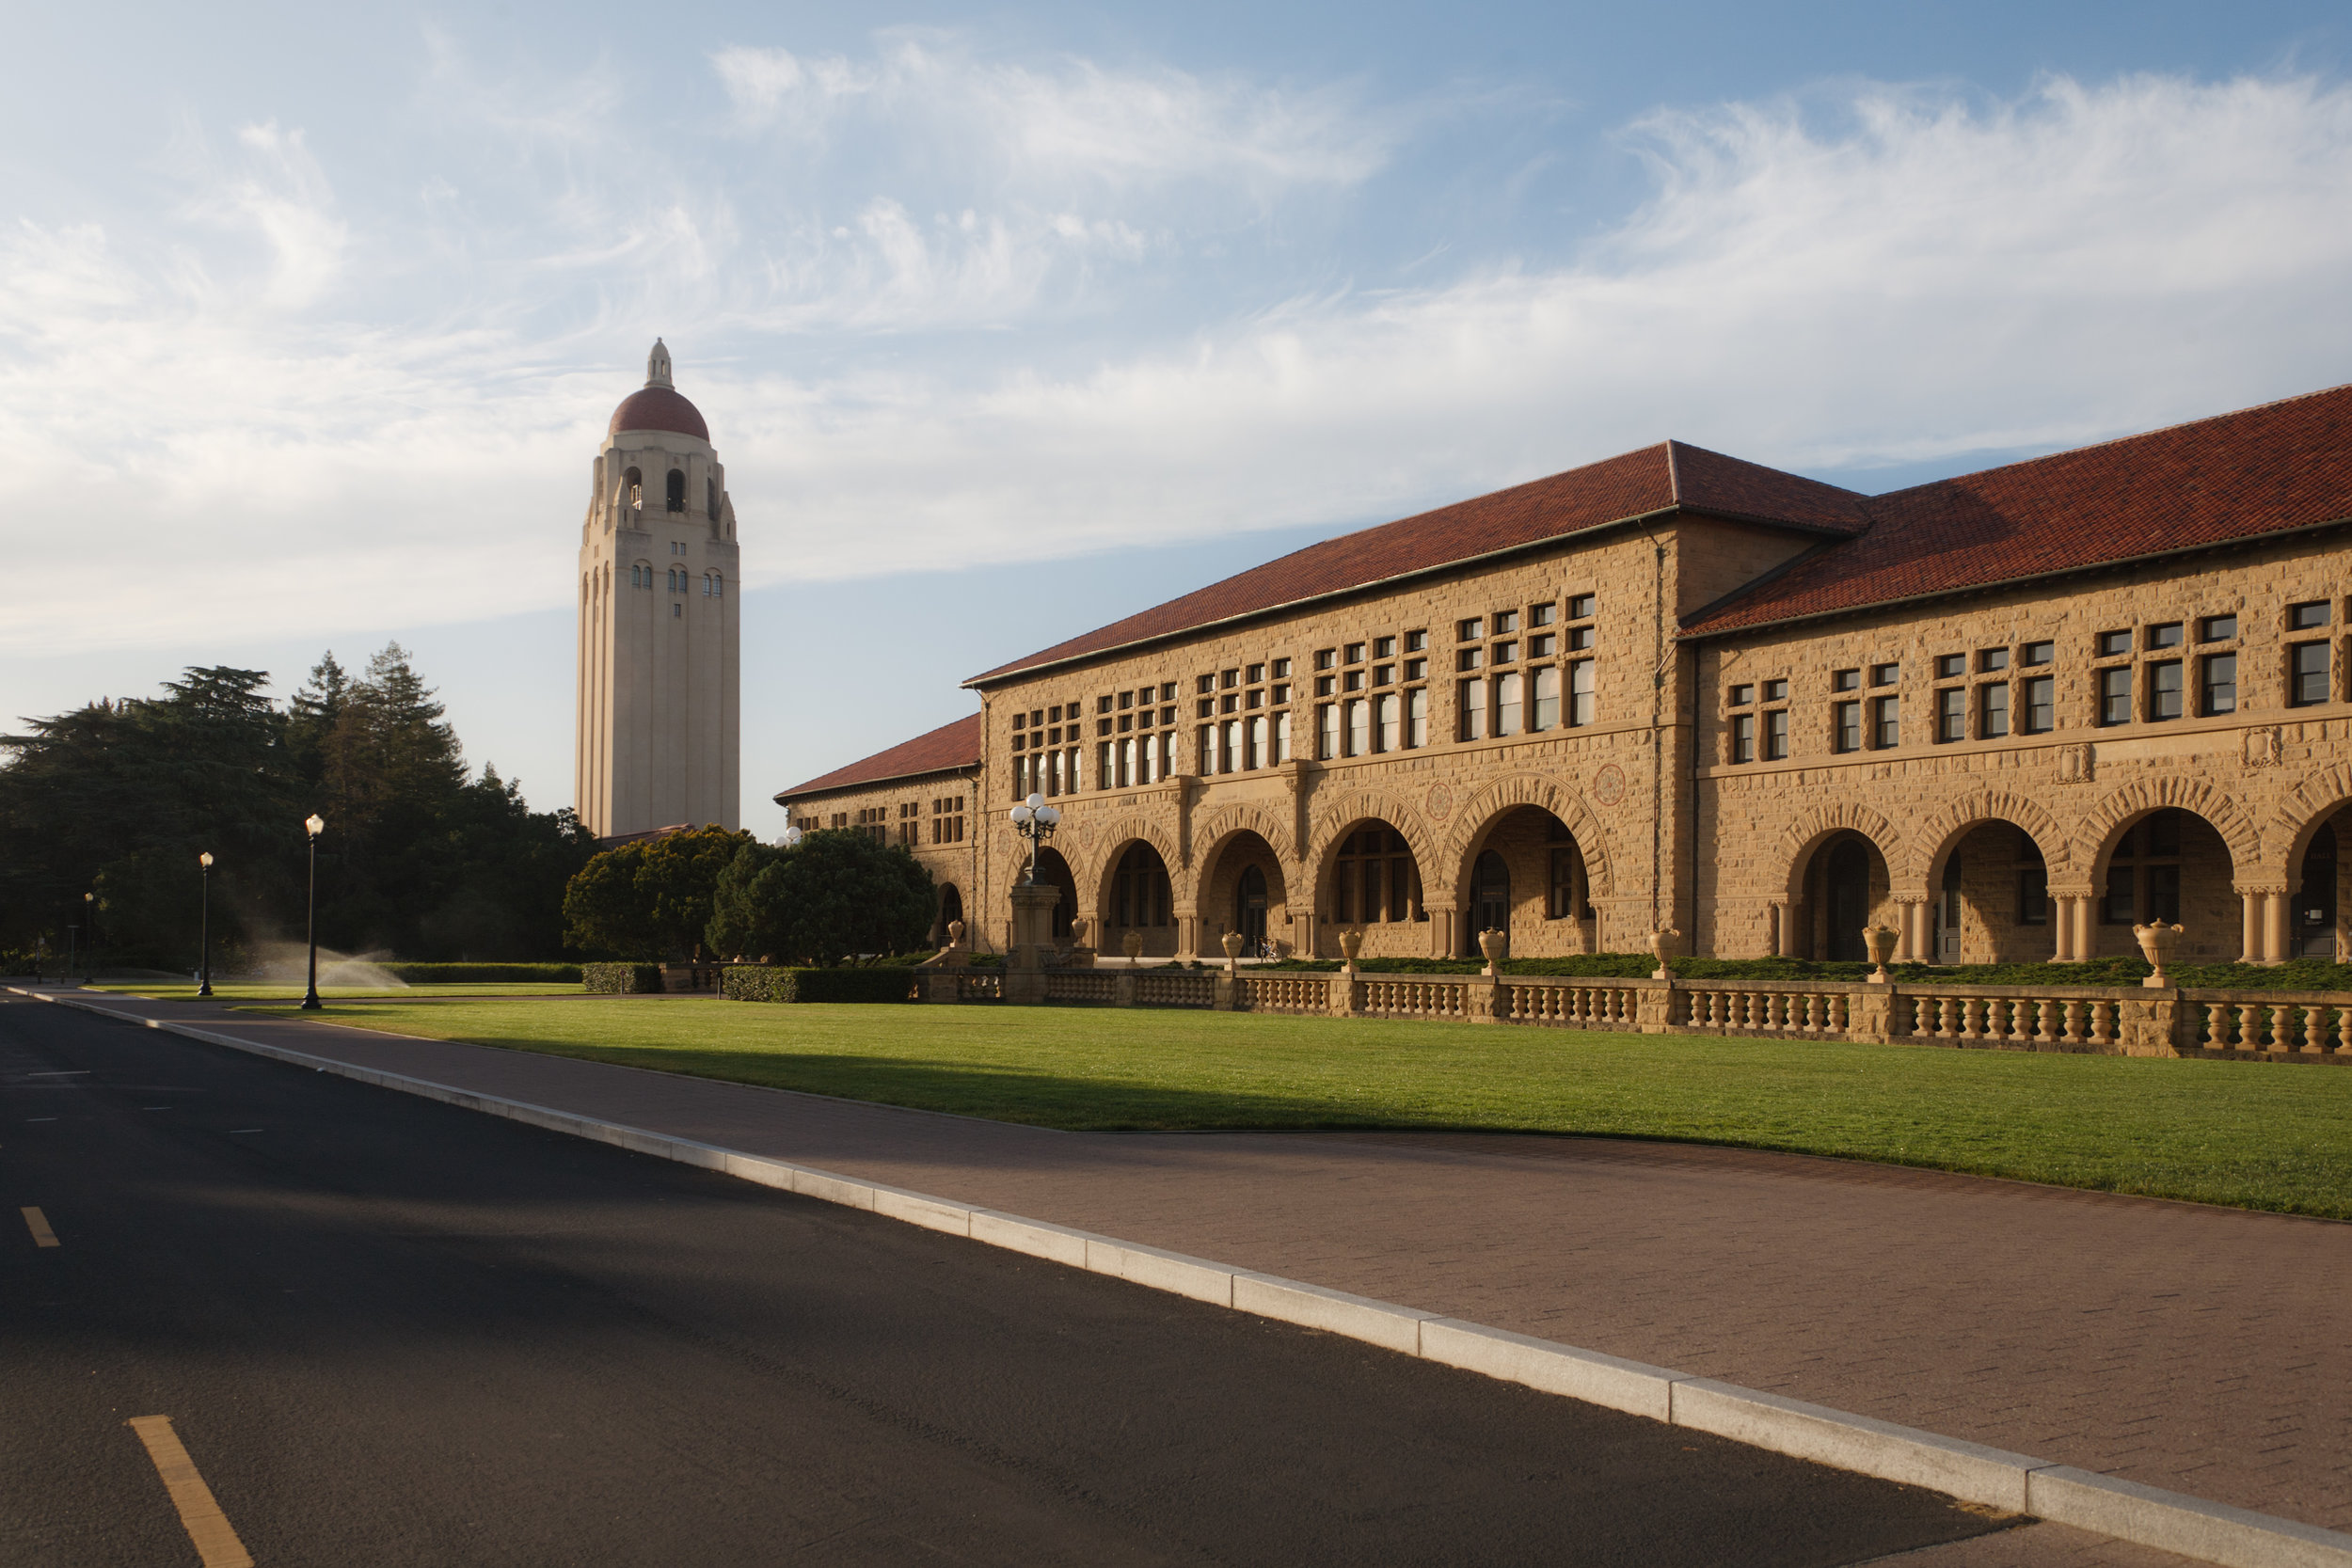 ARTO Studio was selected to attend the SLELP3 in Stanford this weekend